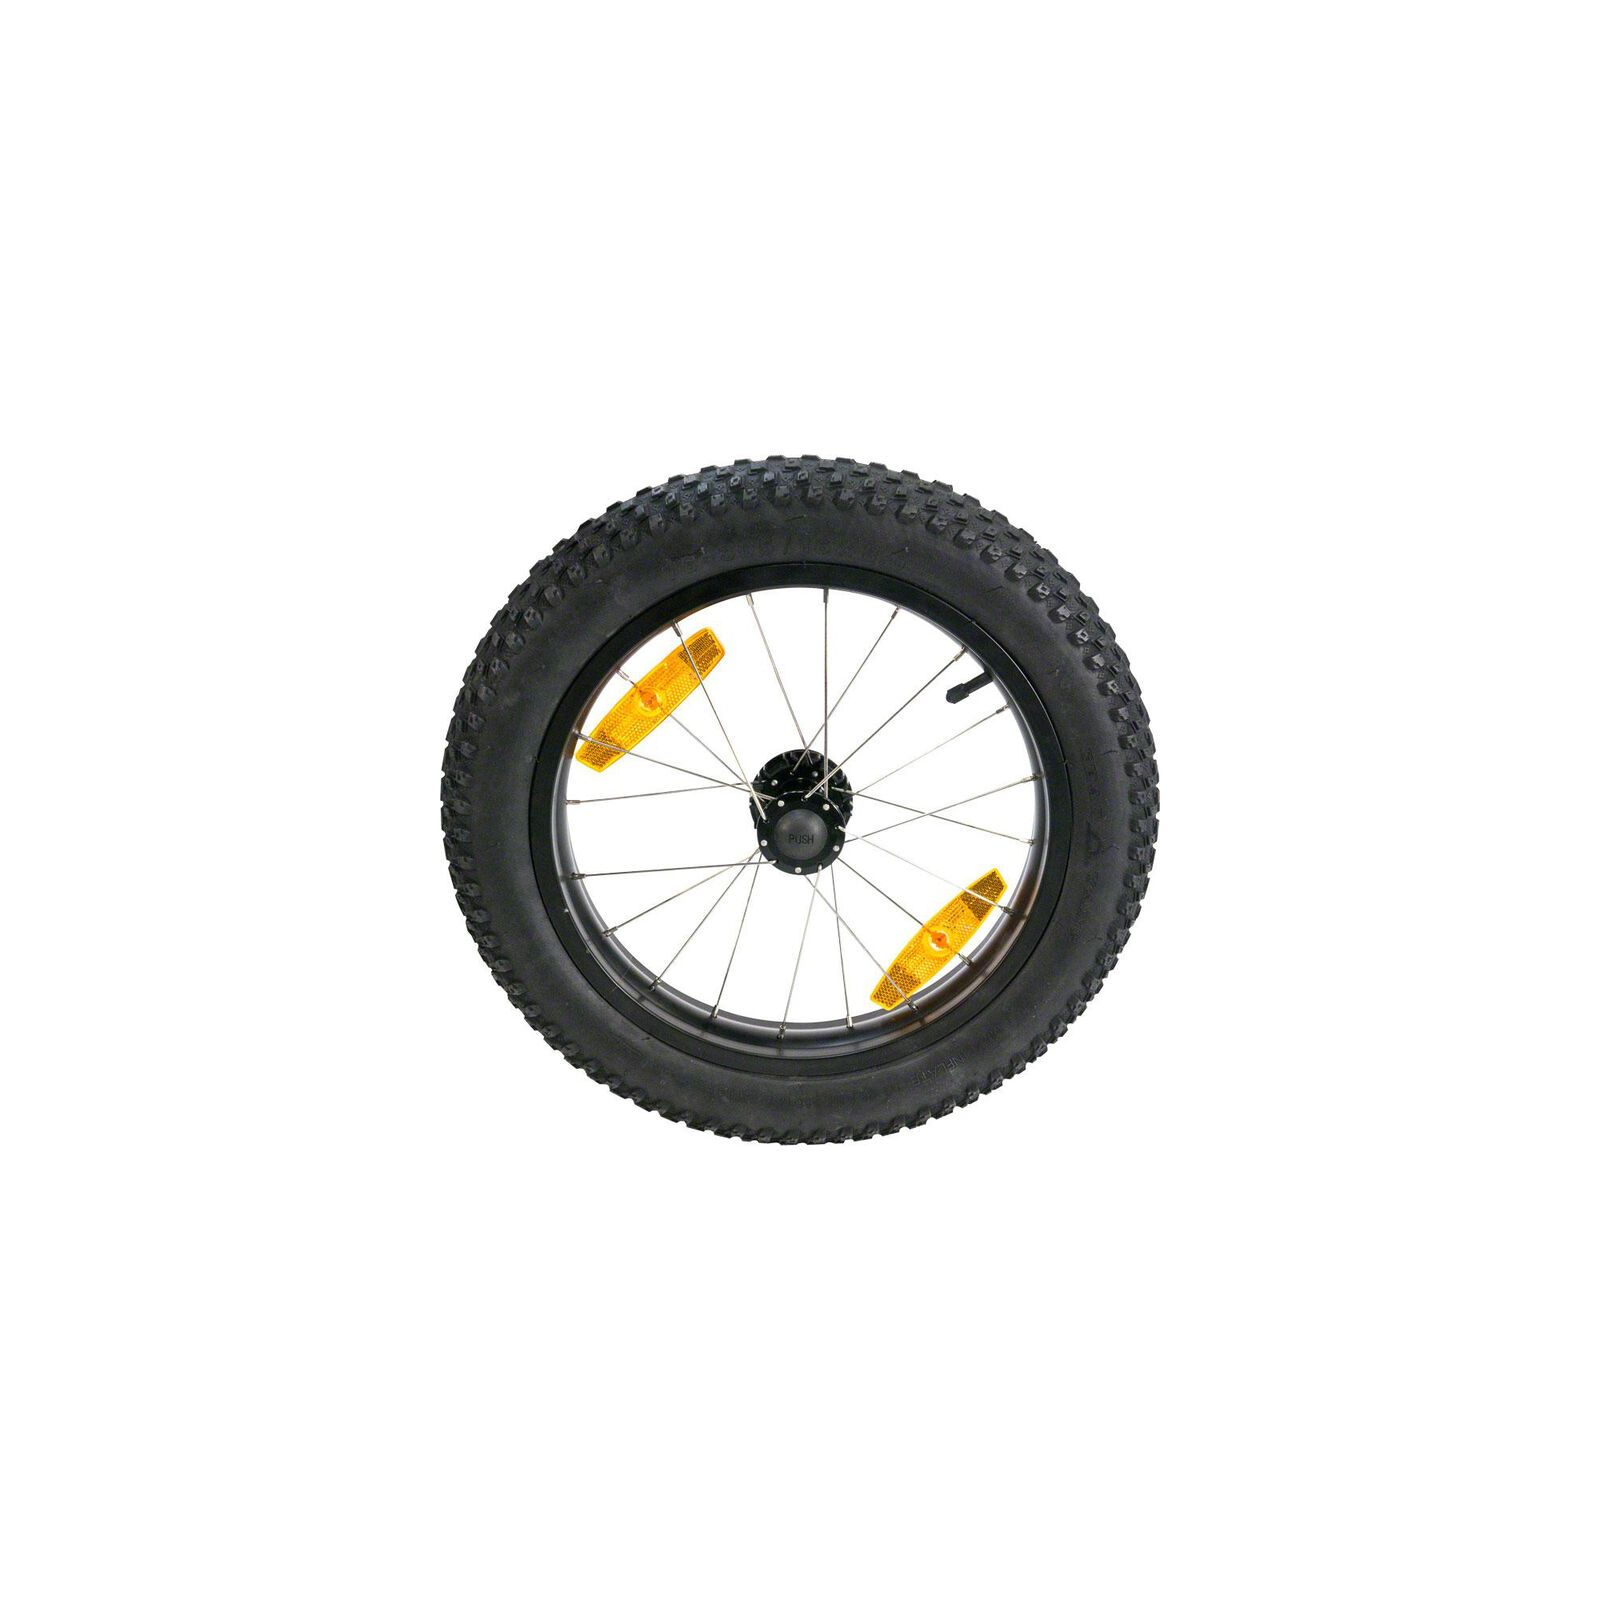 Burley Plus Größe Wheel Kit: 16